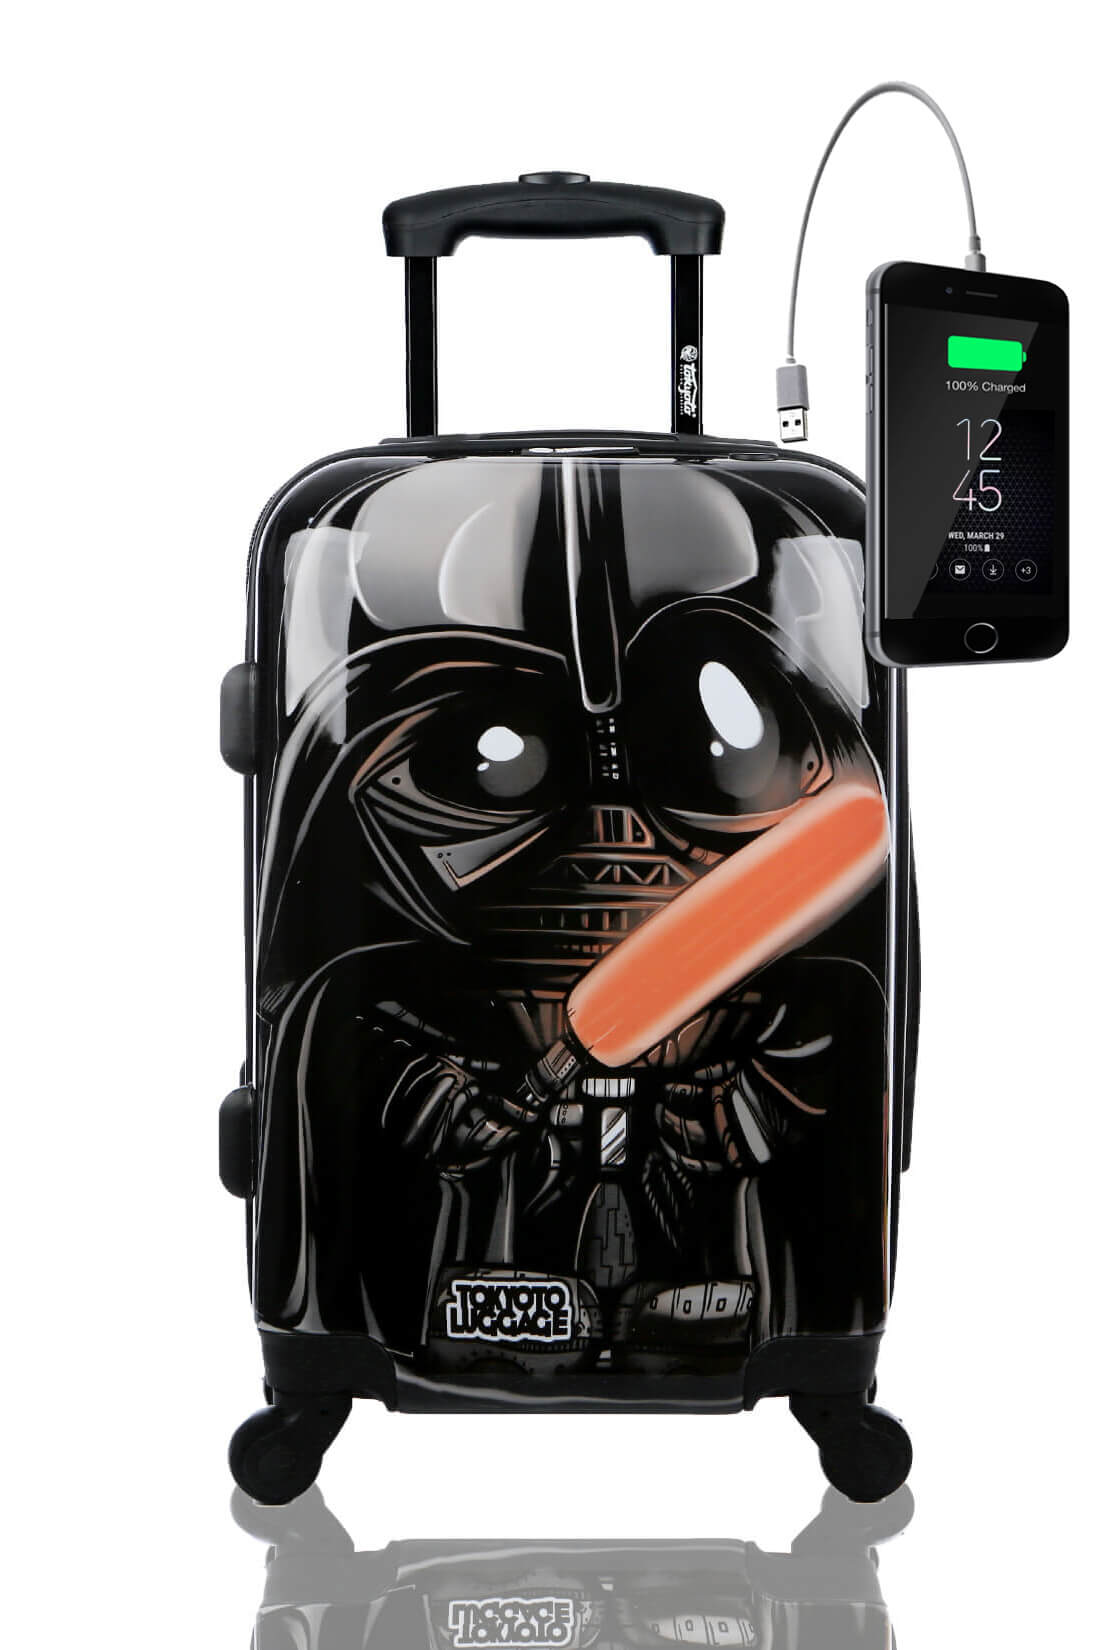 Childrens Kids Cabin Hand Luggage Carry On Trolley Suitcase BLACK EMPIRE